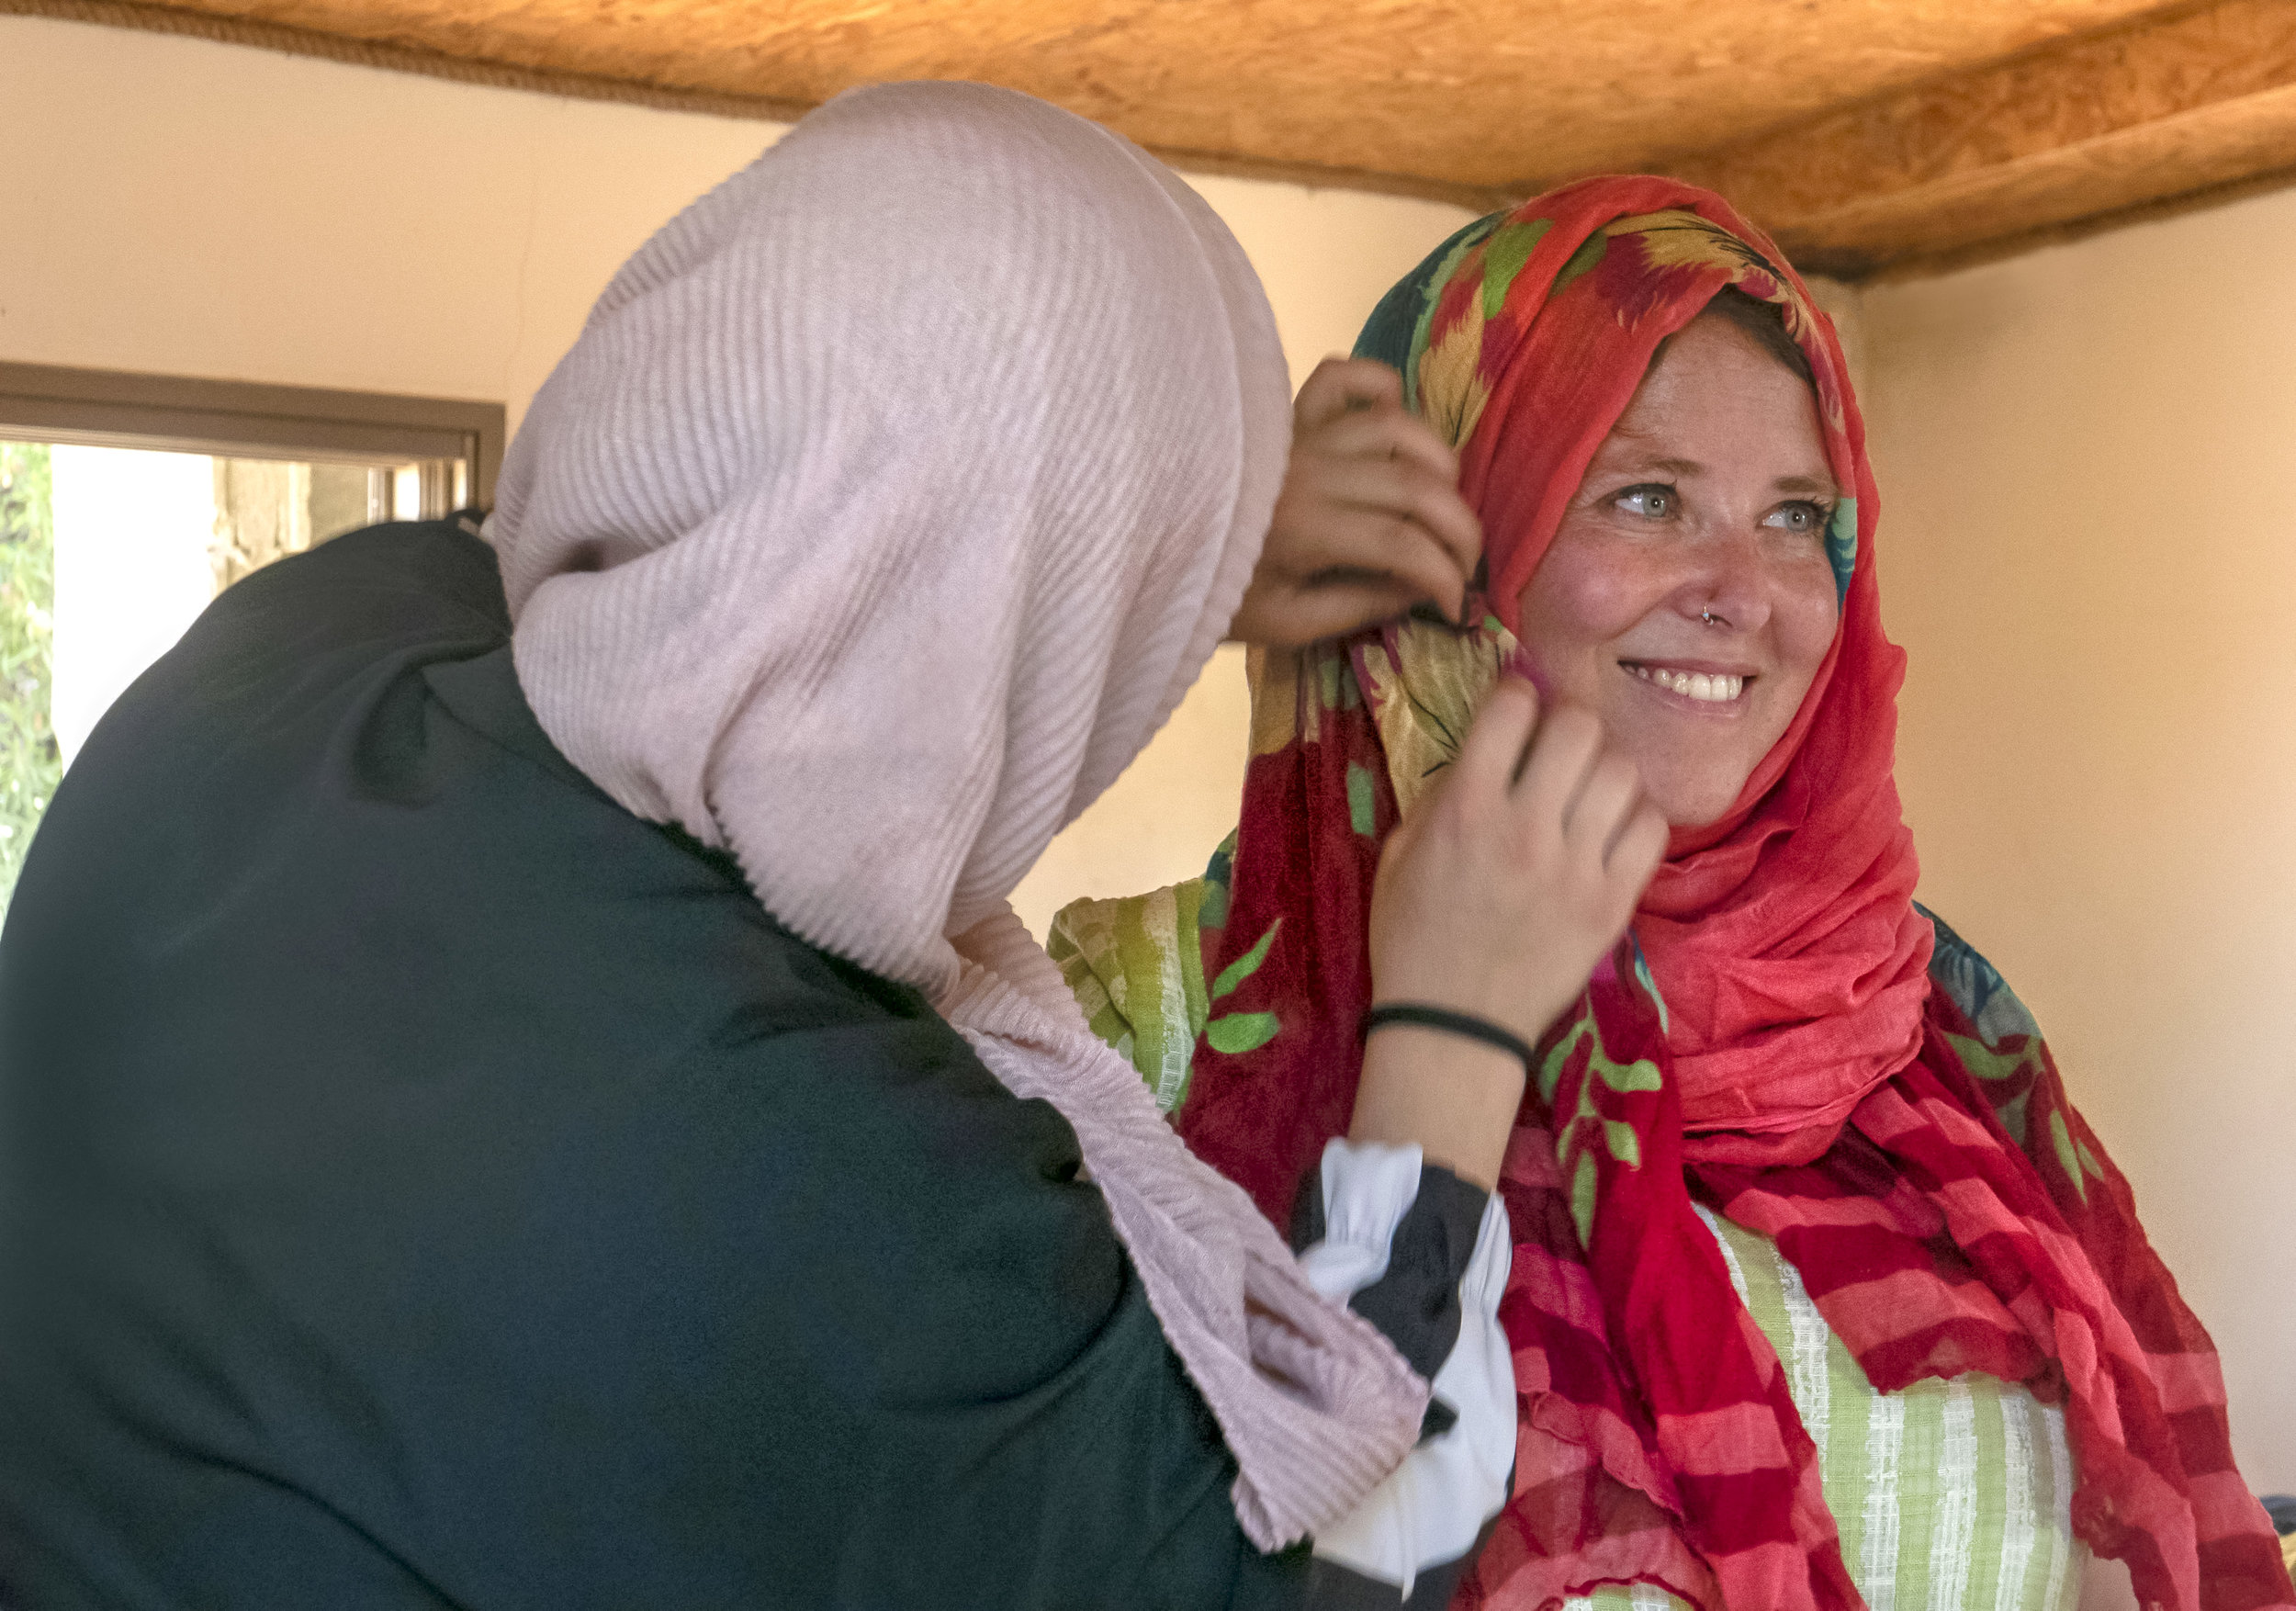 A Palestinian participant wraps an Israeli participant's headscarf in the hijab manner, all with light humour and good faith